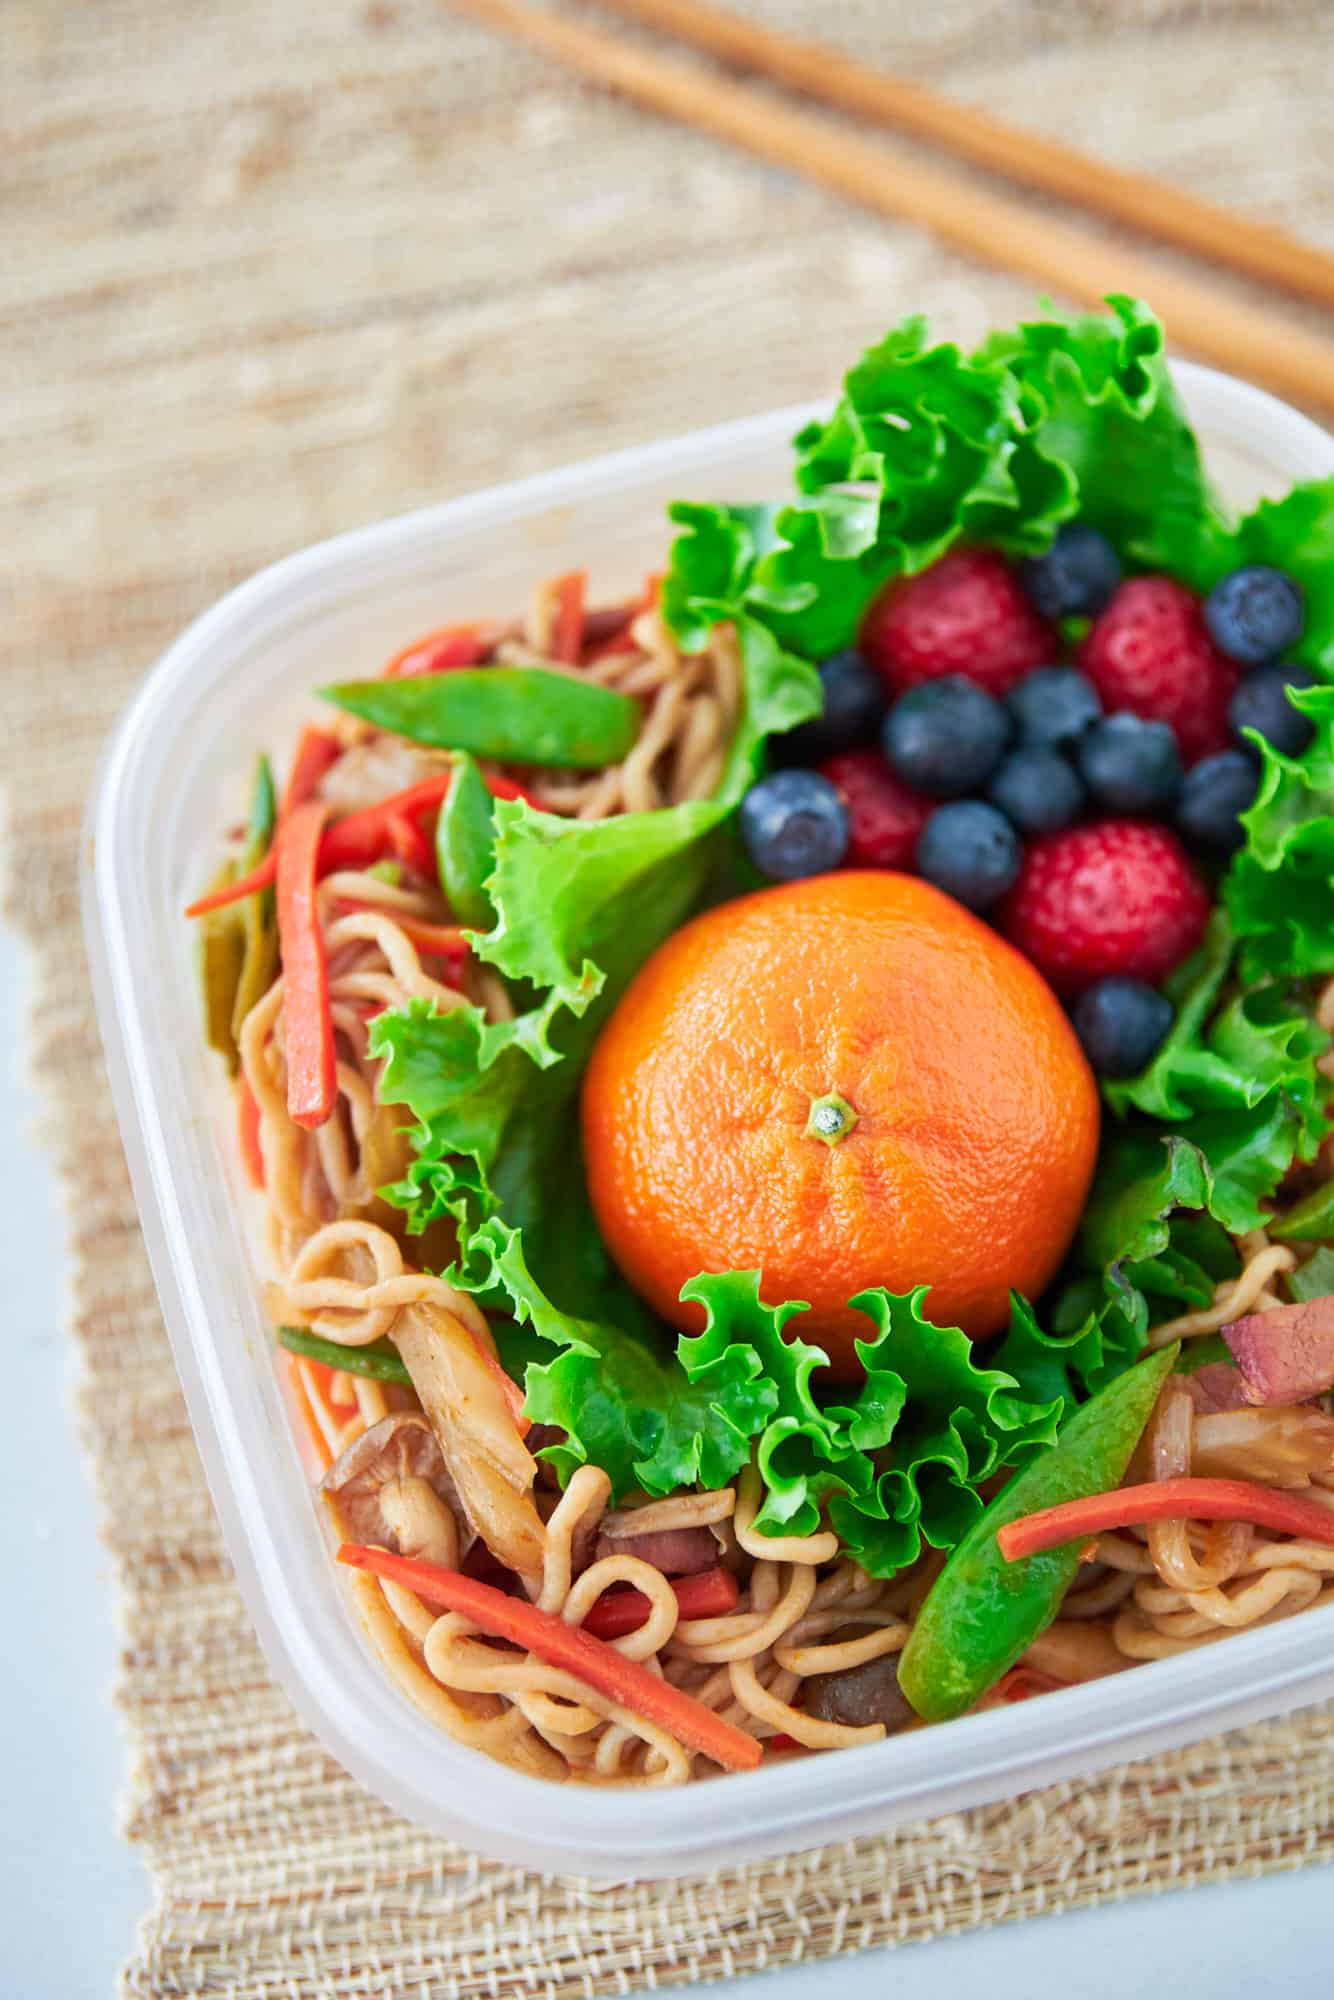 A delicious low-carb yakisoba bento made with shirataki noodles.